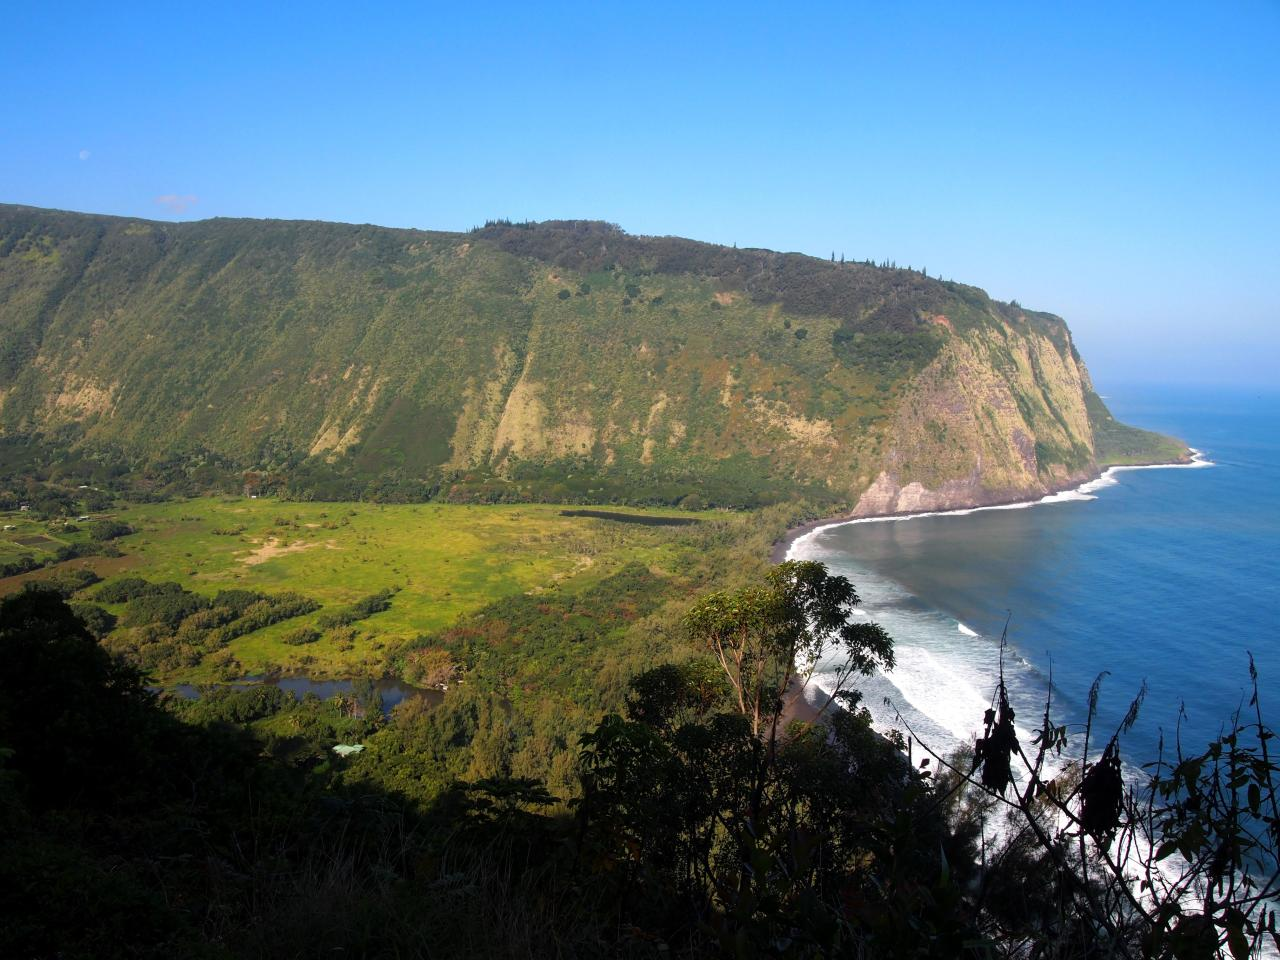 Waipi'o Valley.